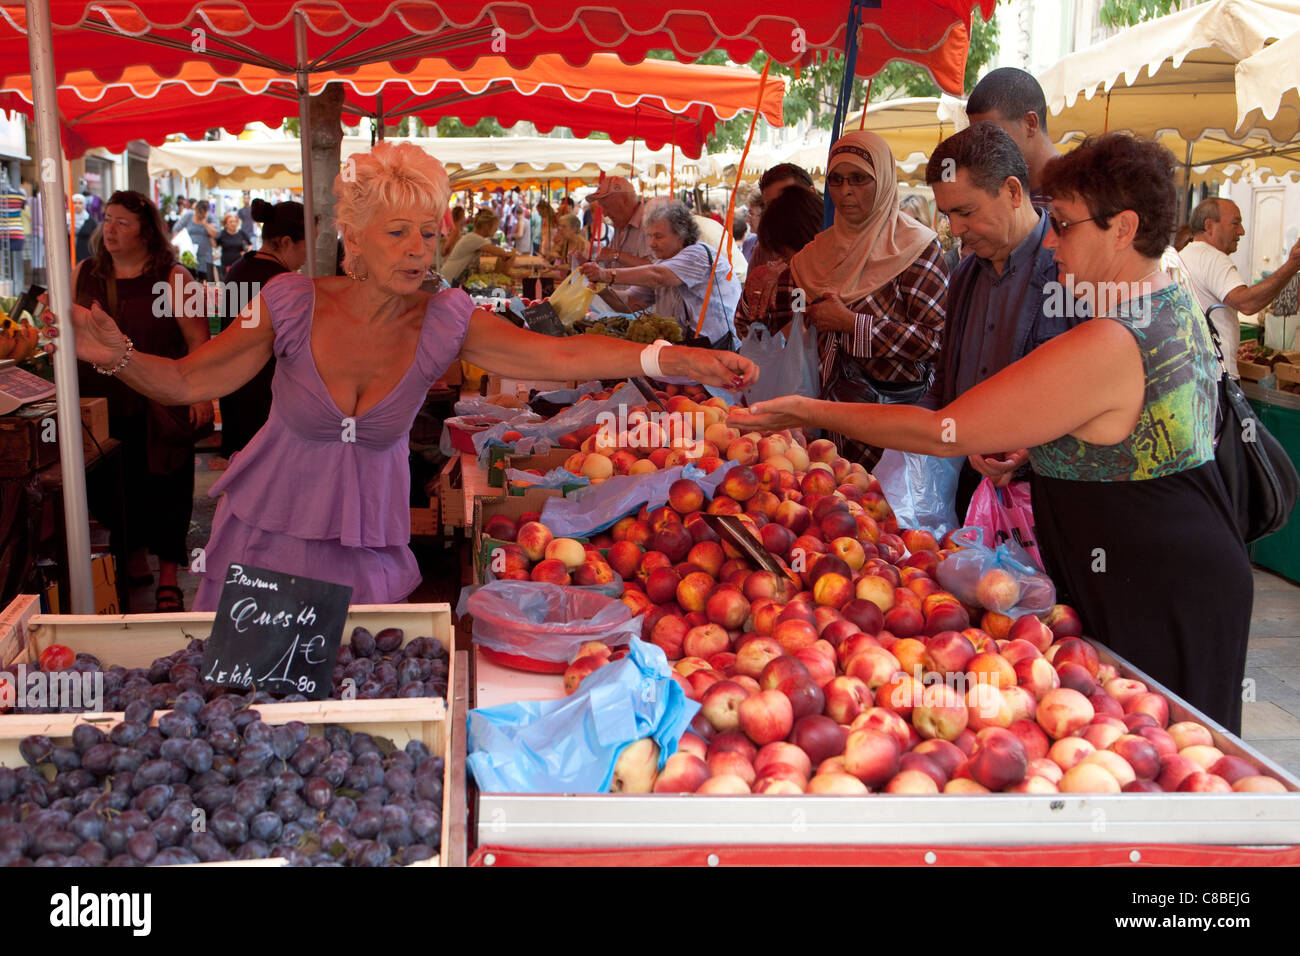 customer buying fruit and money exchanging hands at the market place Toulon France - Stock Image